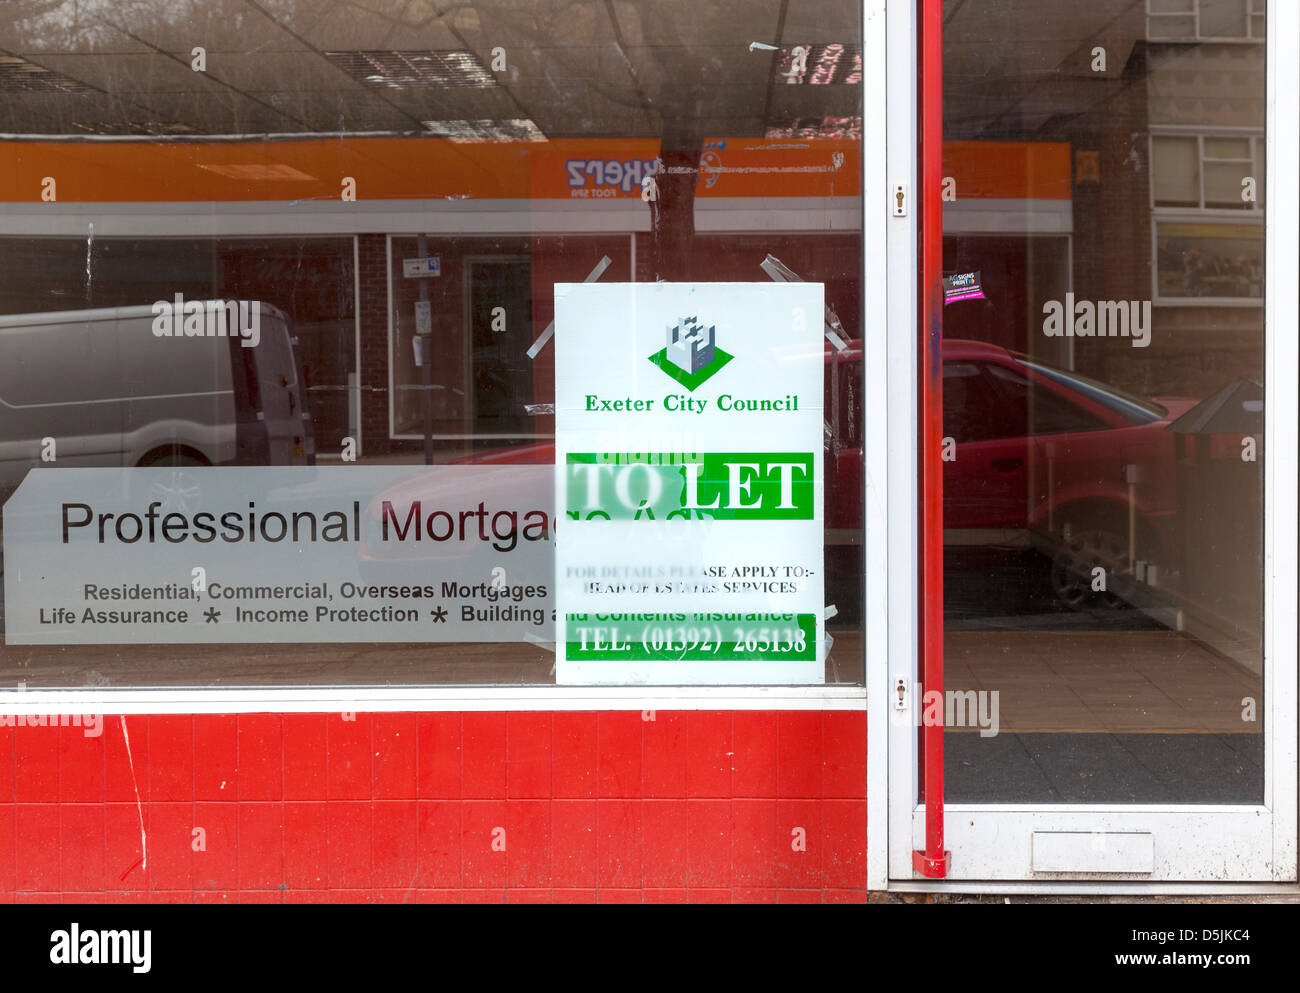 Mortgage shop that has closed down in the recession - Exeter, Devon. 2013 - Stock Image